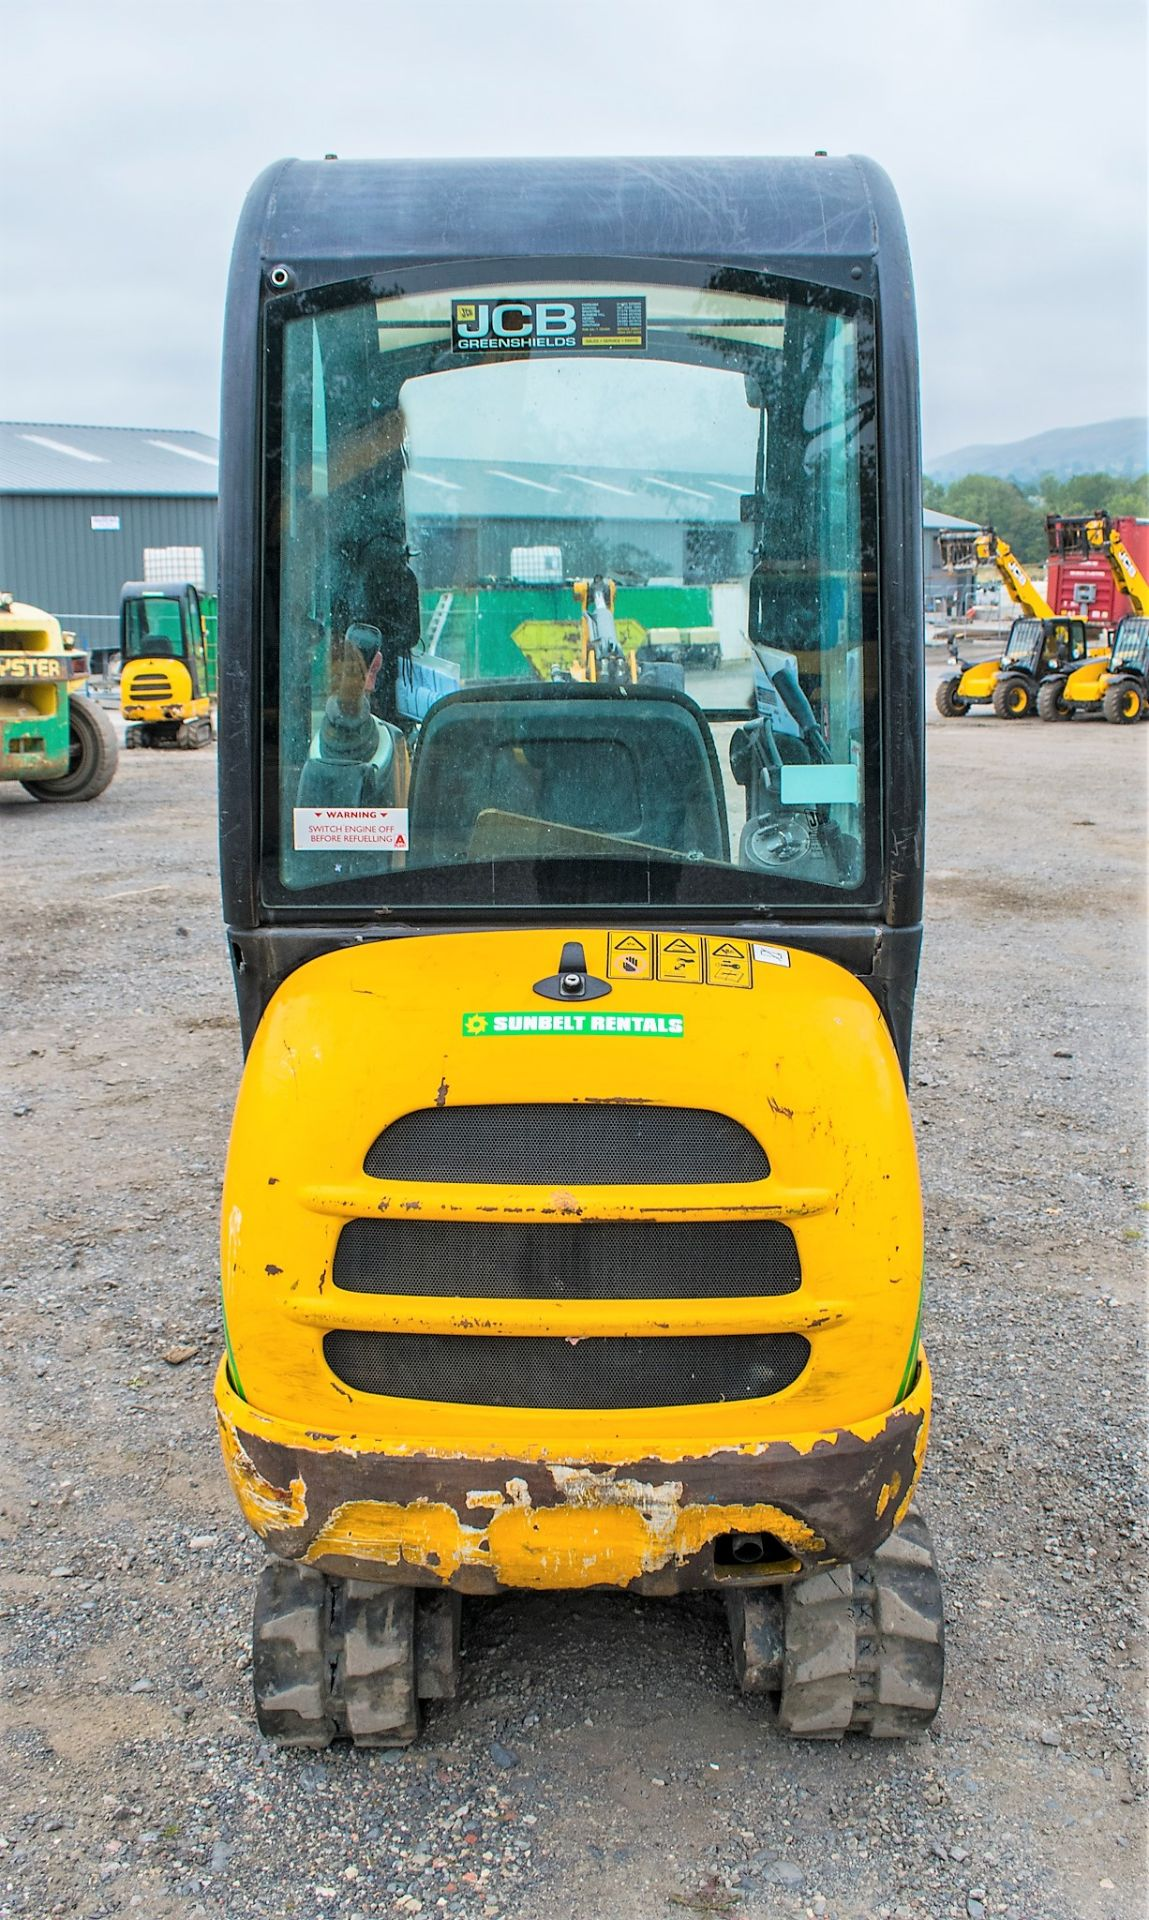 Lot 19A - JCB 8016 1.6 tonne rubber tracked excavator Year: 2013 S/N: 71469 Recorded Hours: 1855 A602773